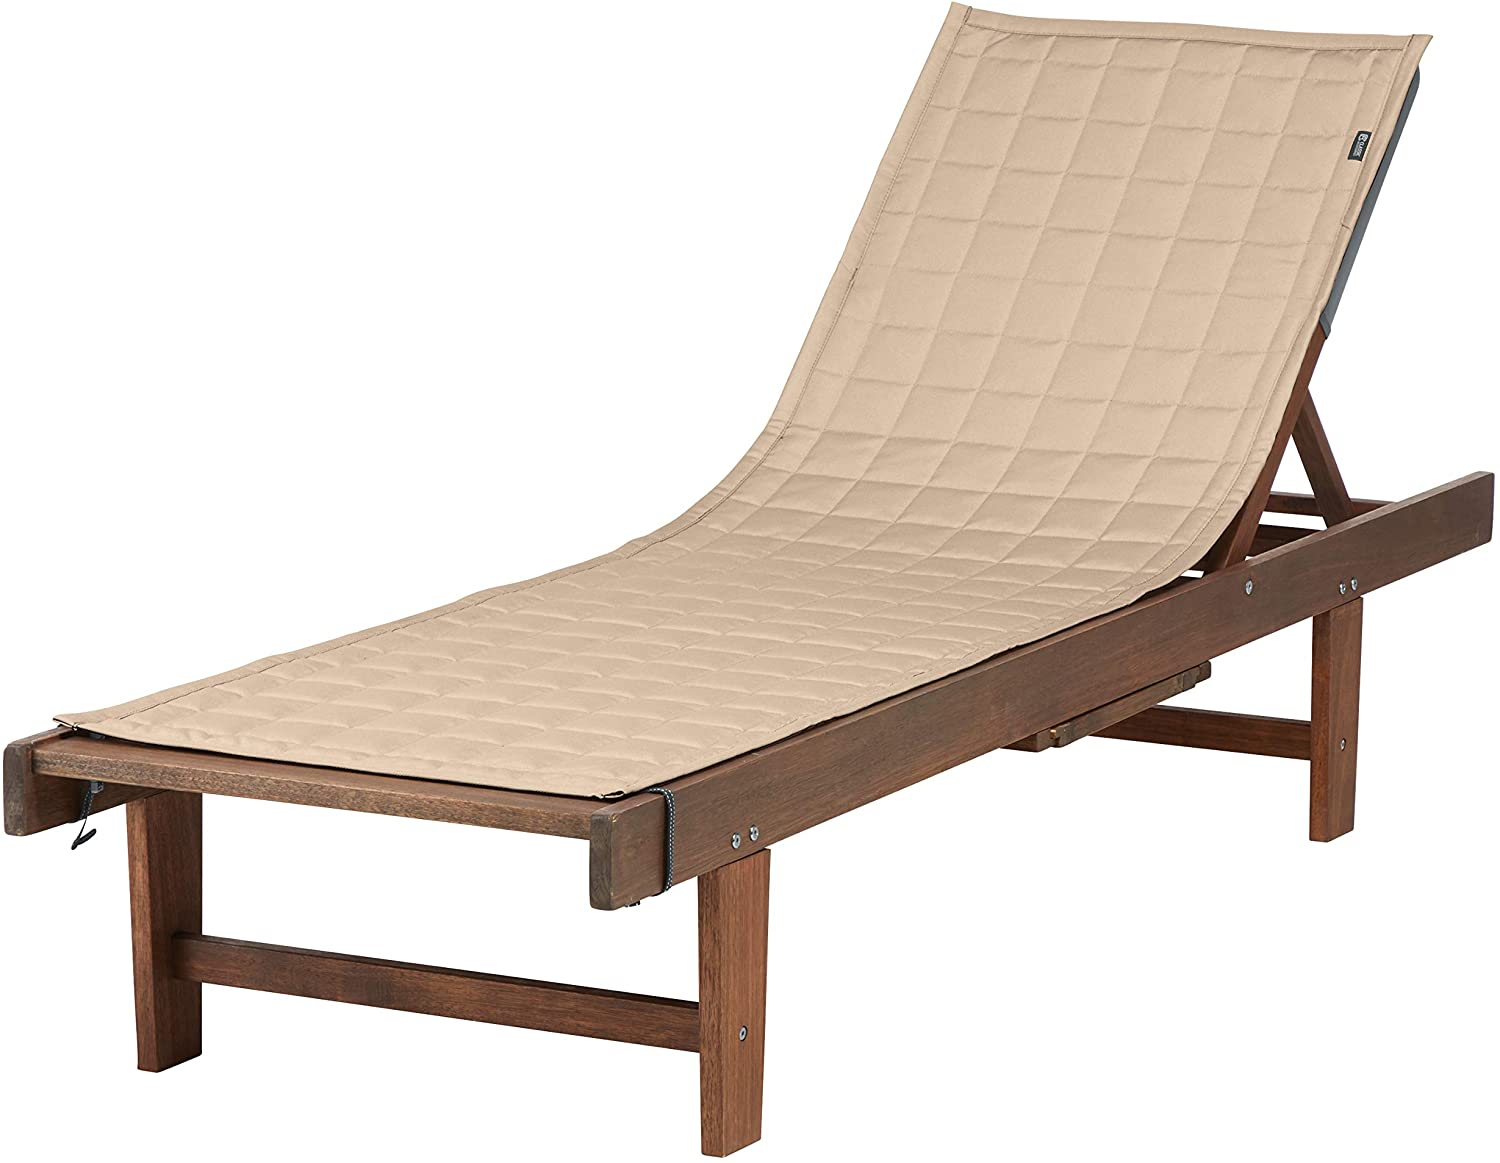 Classic Accessories Montlake Water-Resistant 72 Inch Patio Chaise Lounge Slipcover, Antique Beige